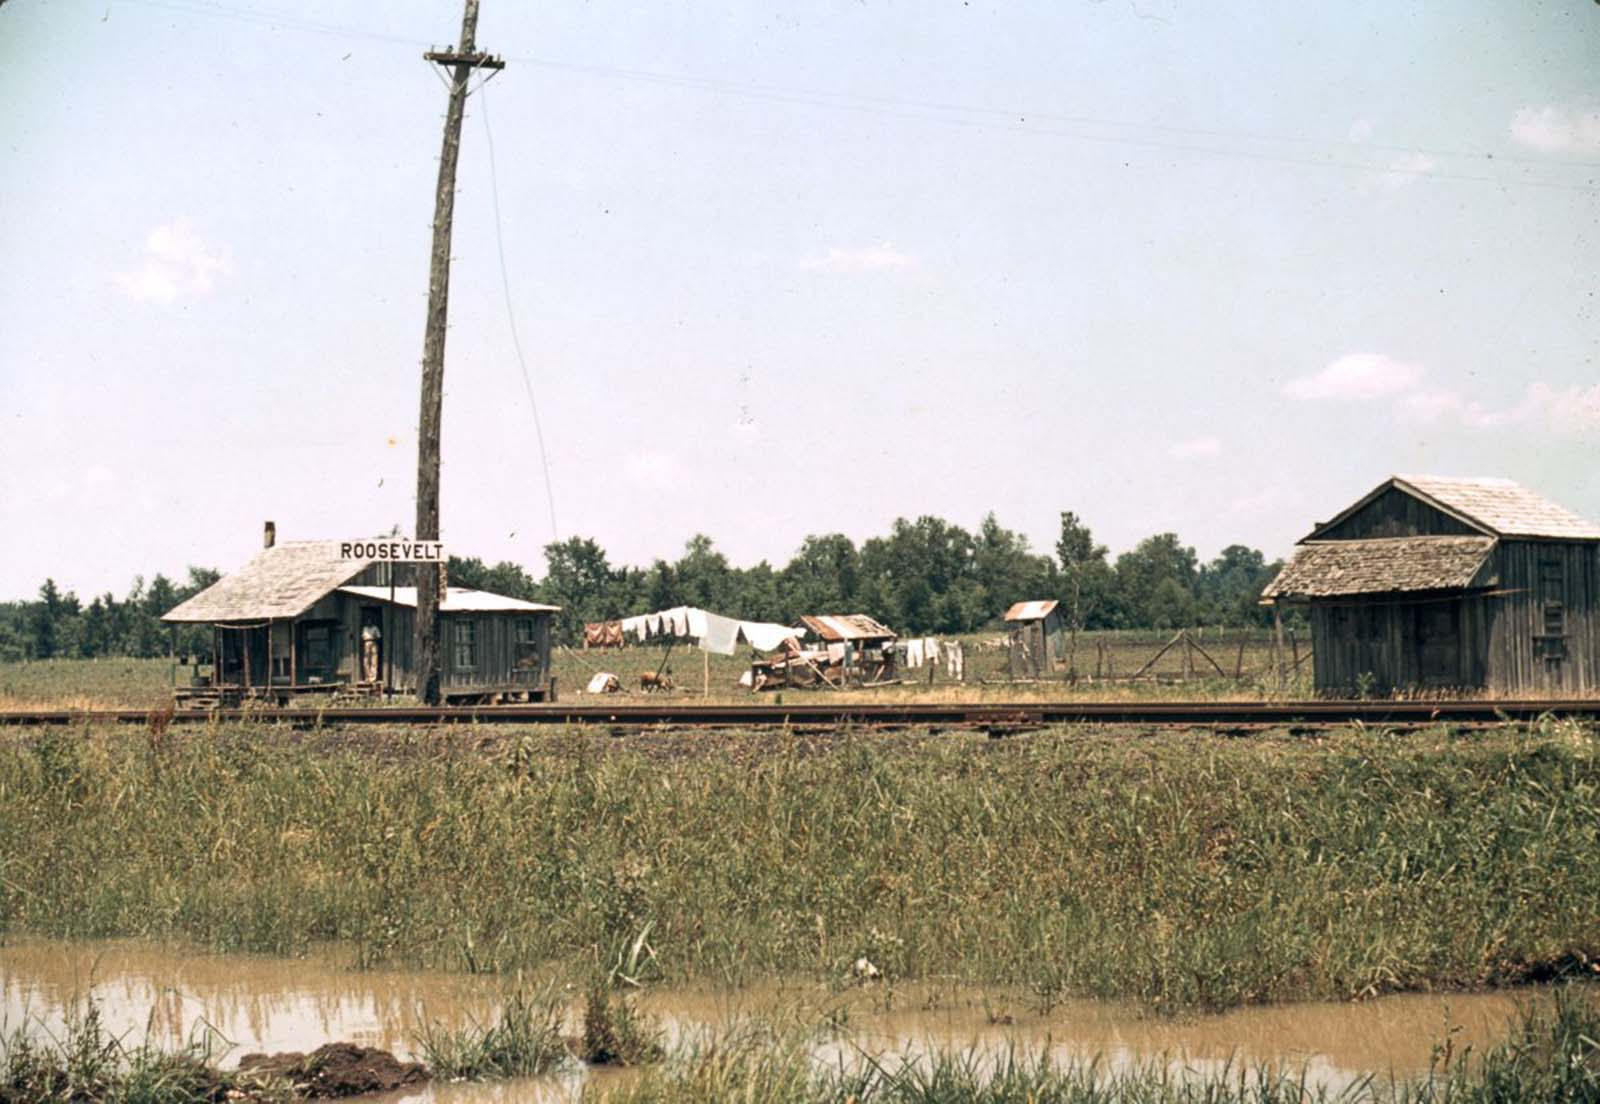 A railway station in Louisiana. 1940.